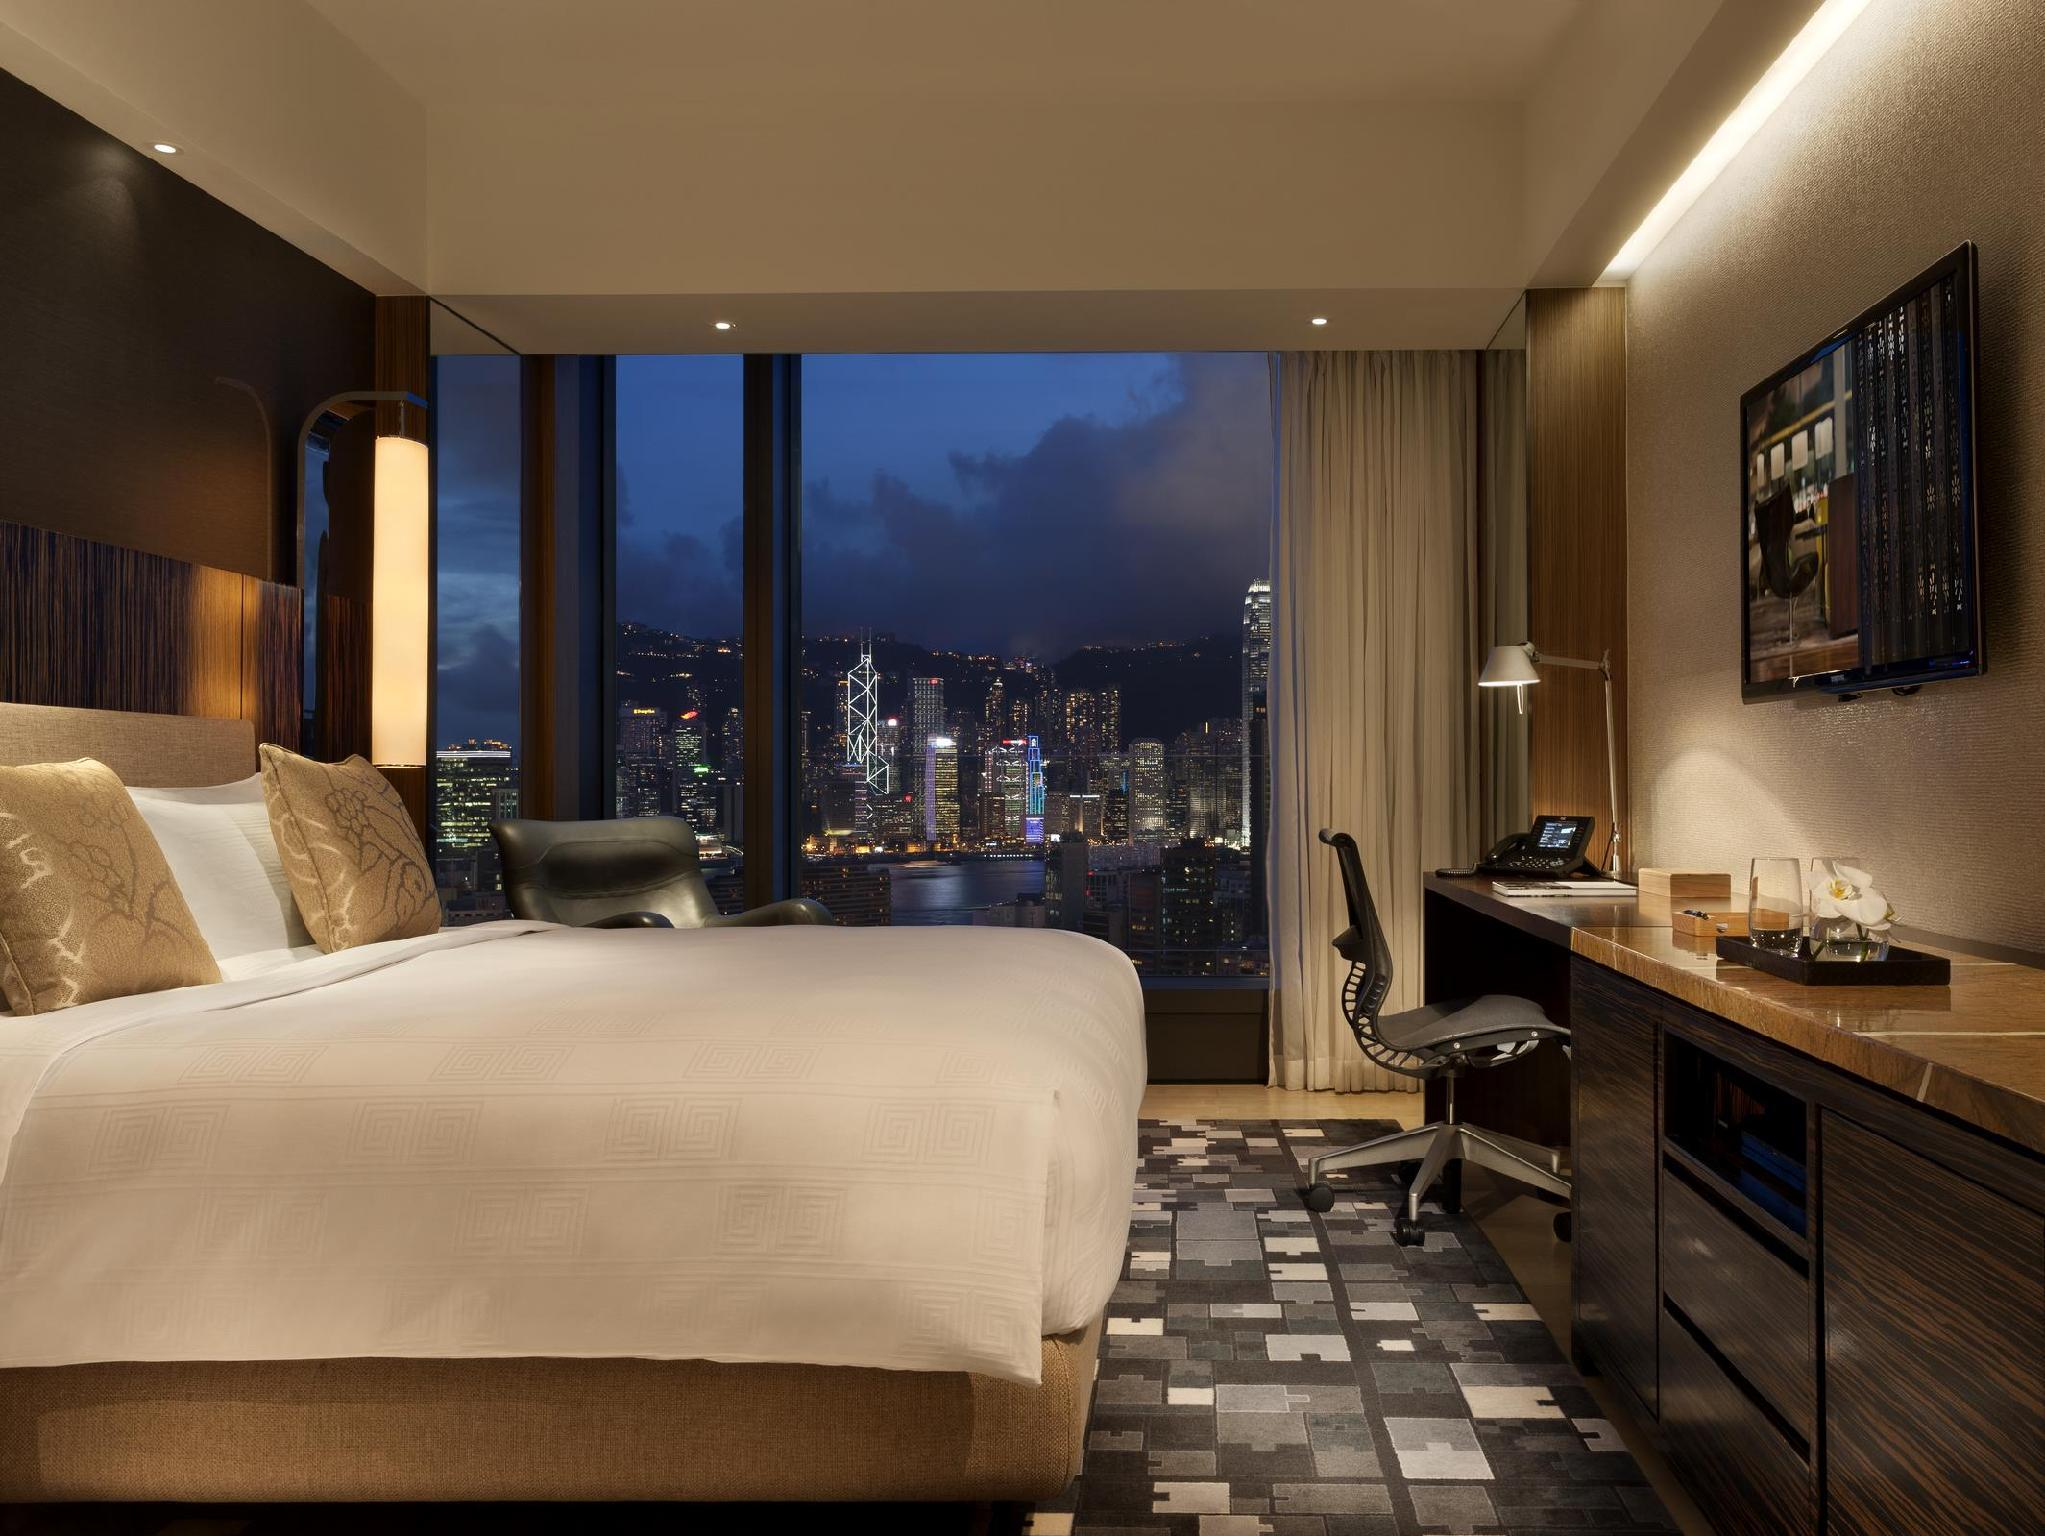 Habitación ICON Club 36 con cama extragrande y vistas al puerto (ICON Club 36 Harbour View with King Bed)